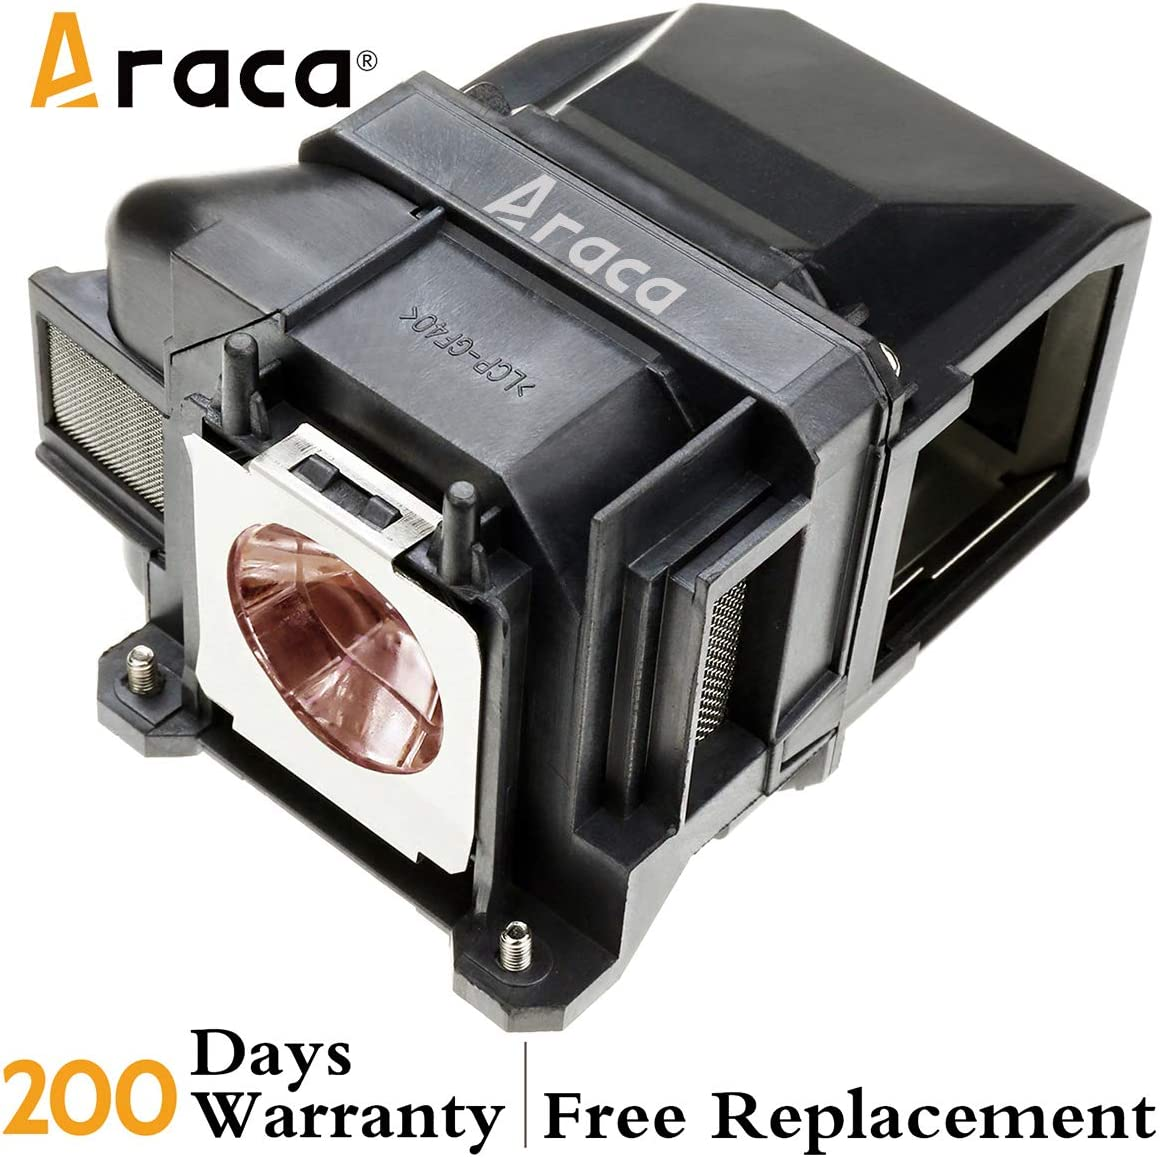 Araca ELPLP88 //V13H010L88 Replacement Projector Lamp with Housing for Epson EX7240 EX3240 EX9200 VS240 EB-X31 EX5240 TW5350 VS340 VS345 EB-U04 EX5250 H682 H683 //PowerLite 98H 2040 2045 740HD H719A